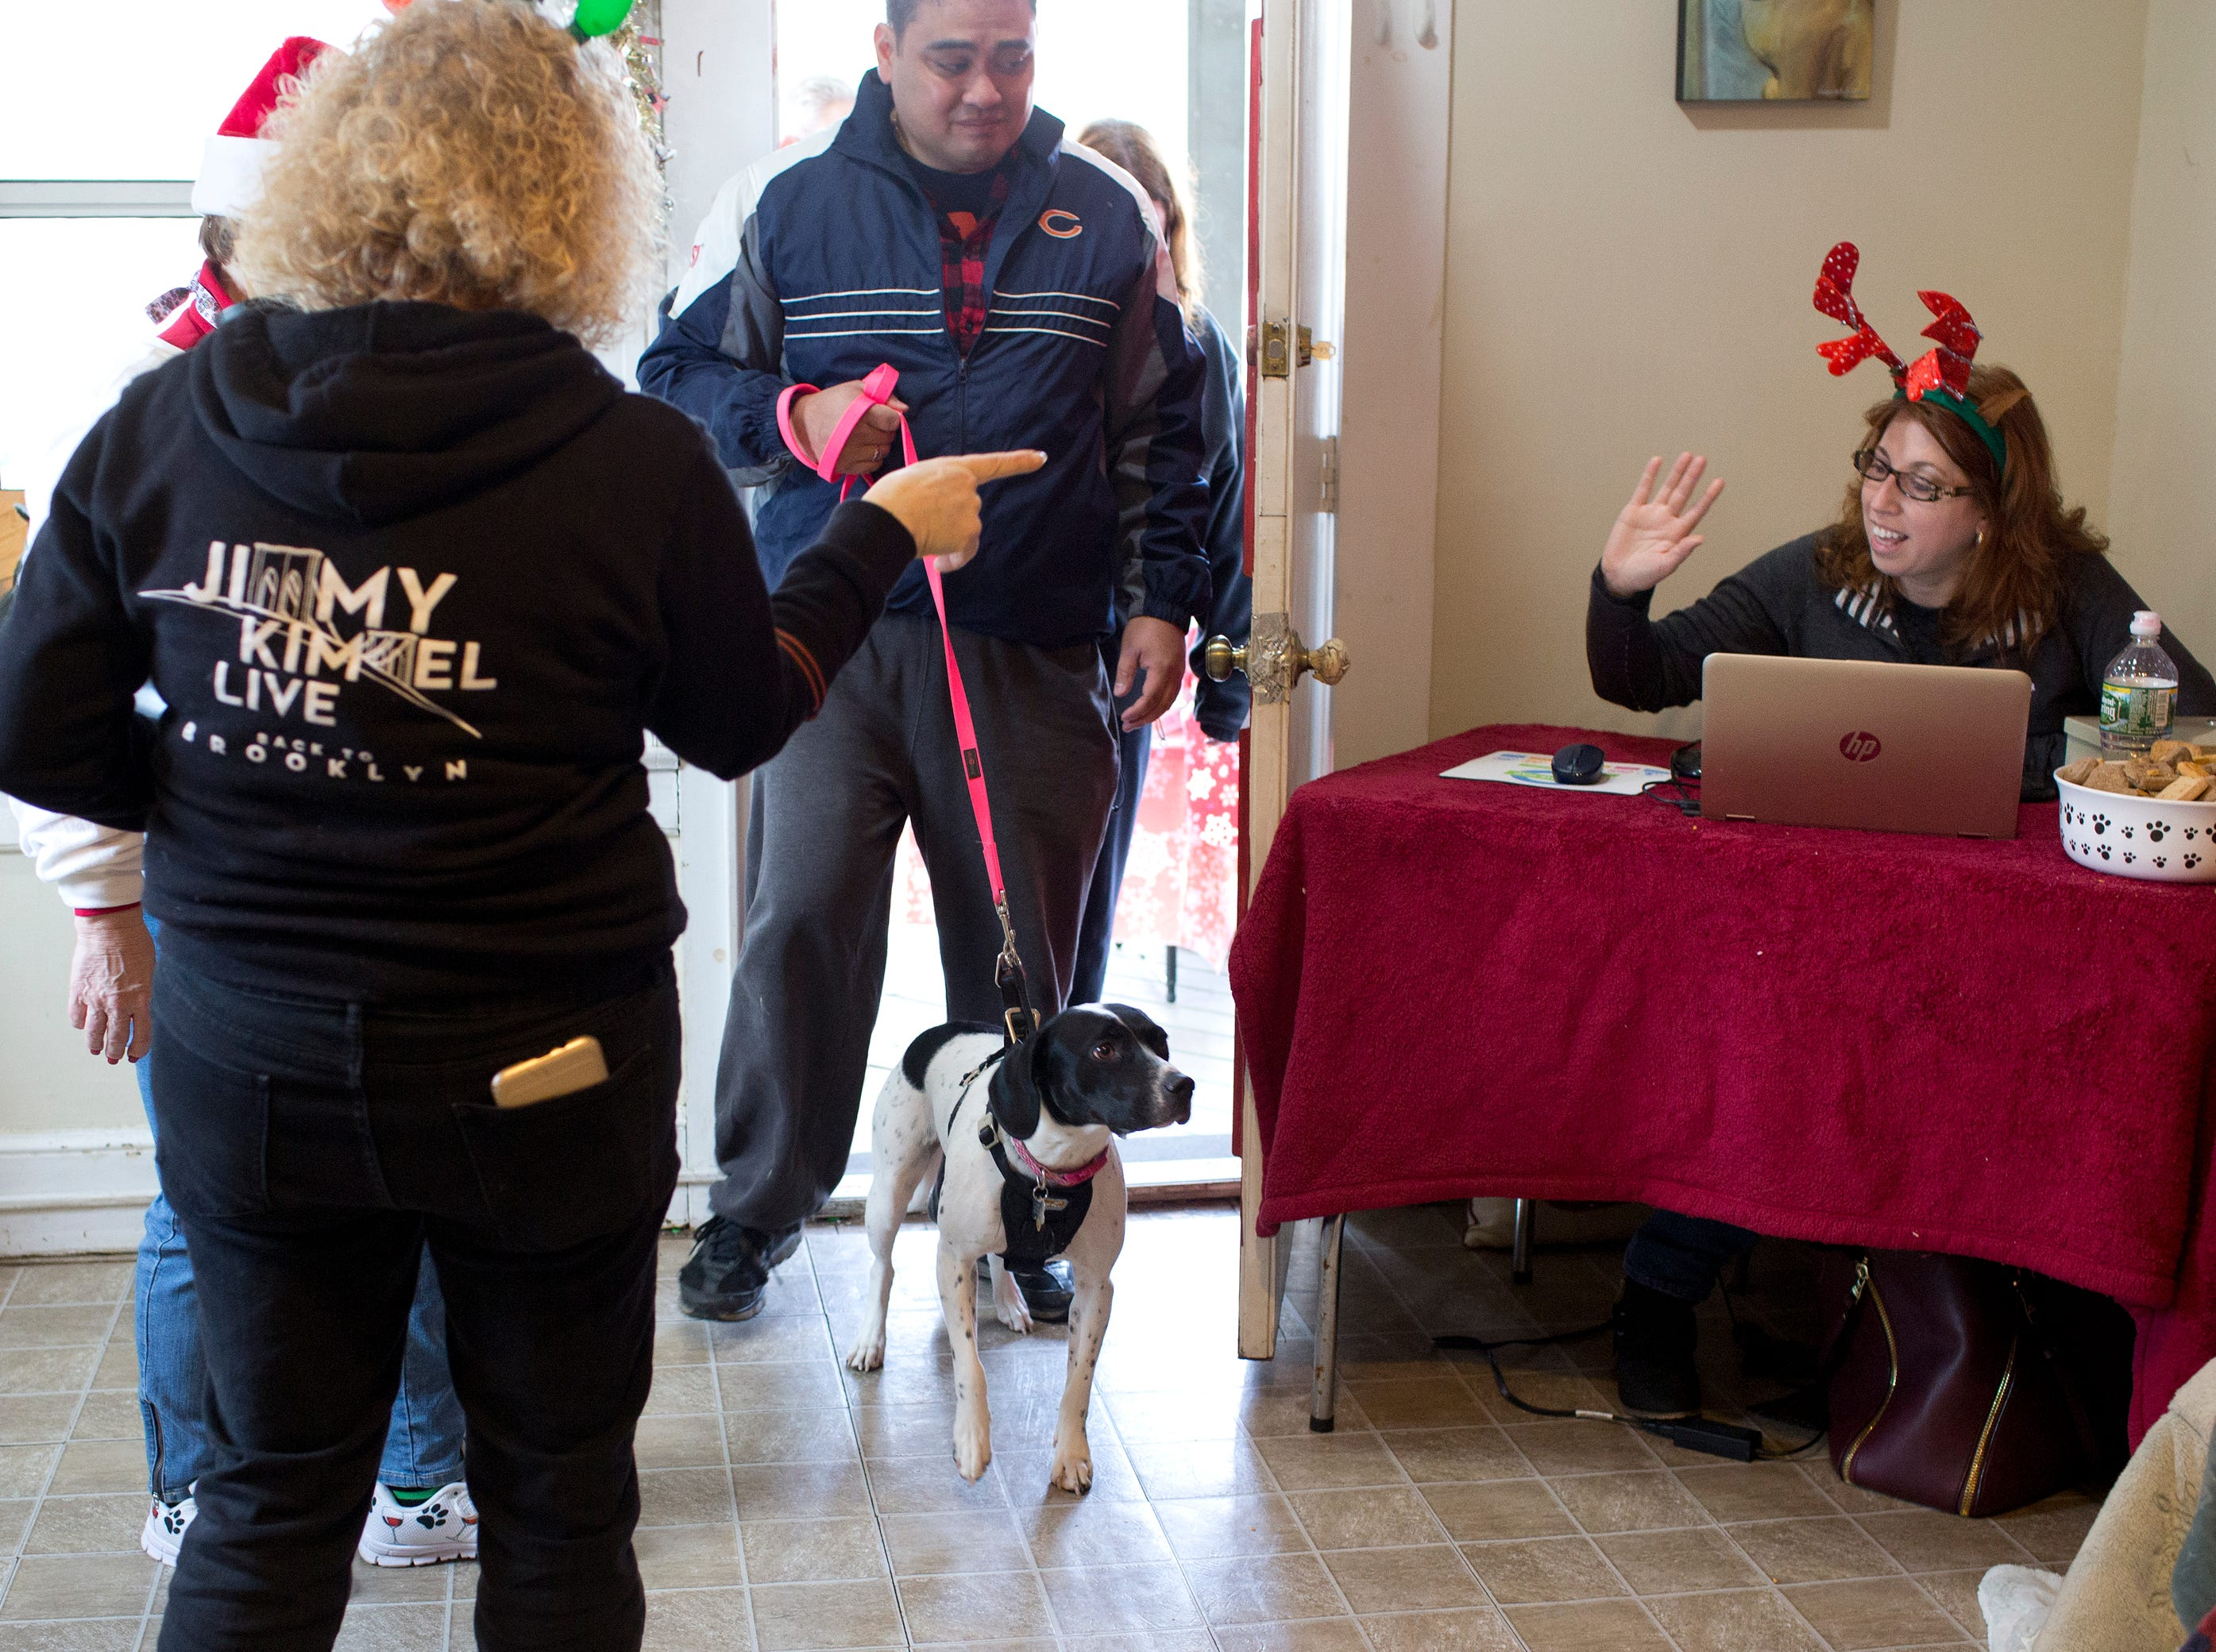 Roxy, a one year old dog, enters tentatively with her owners Frank and Beth Reyes from Hawthorne as volunteer Kristie Mosley (right) waves during the Santa Paws photo session for pets at the Rampo-Bergen Animal Refuge Inc. in Oakland on Saturday, Dec. 1, 2018. Sponsored by Allstate, all proceeds from the photo sessions go directly towards the care of animals rescued by RBARI.